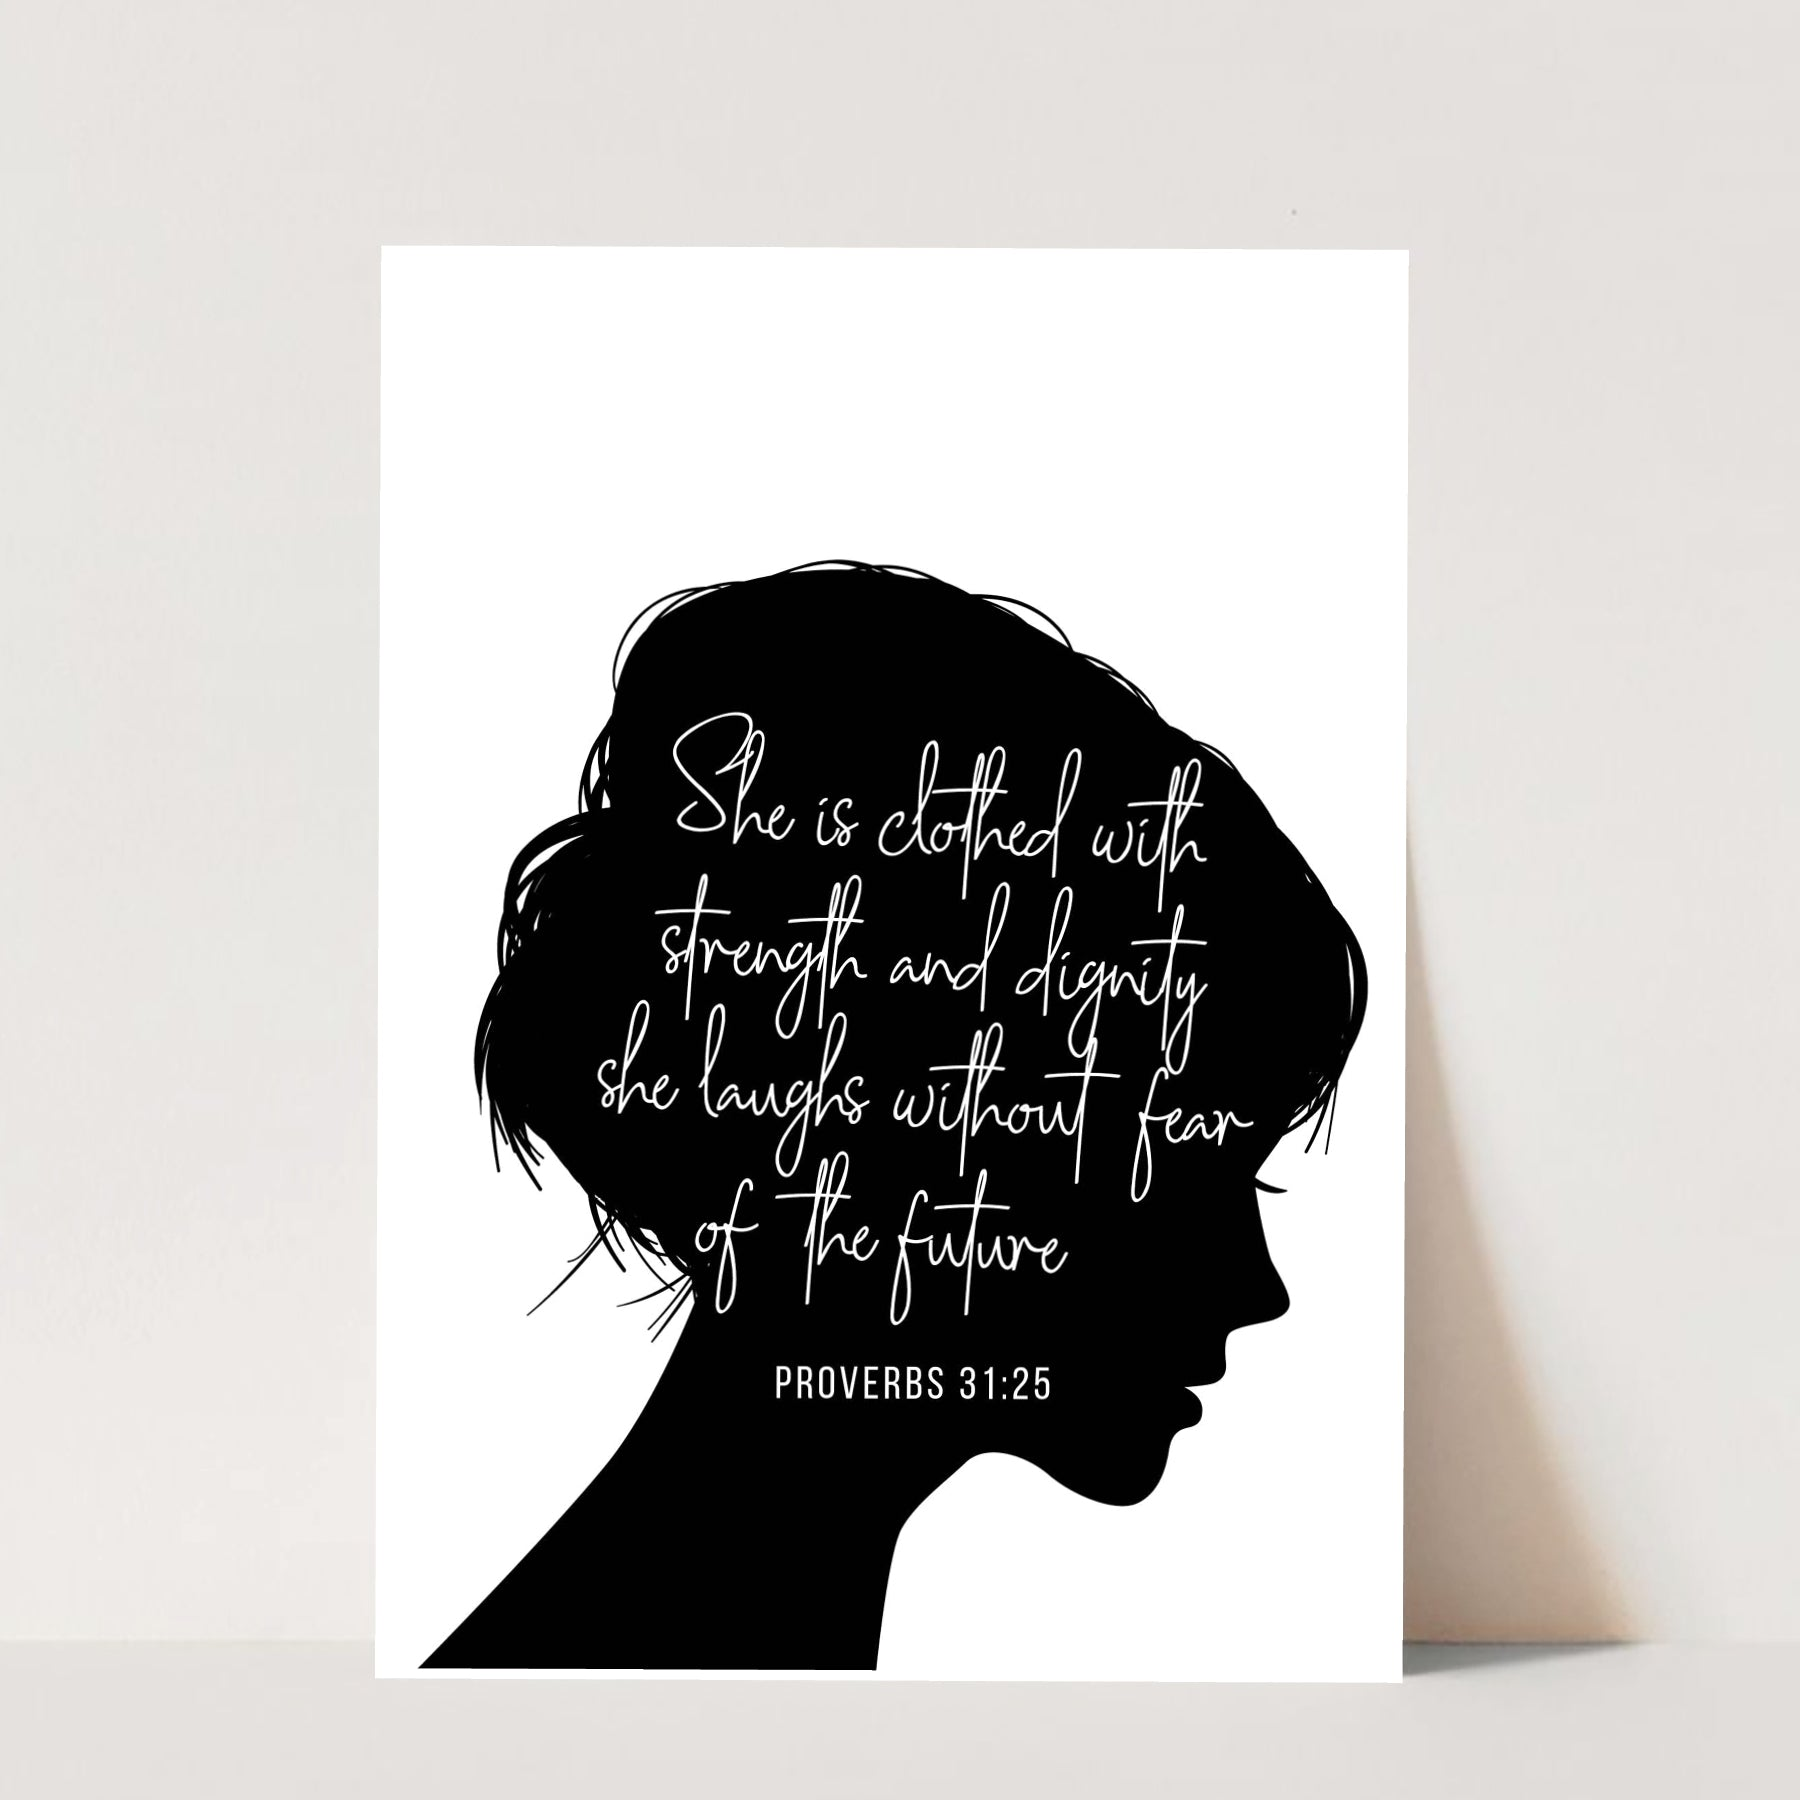 She Is Clothed with Strength and Dignity. She Laughs Without Fear of the Future. -Proverbs 31:25 Print